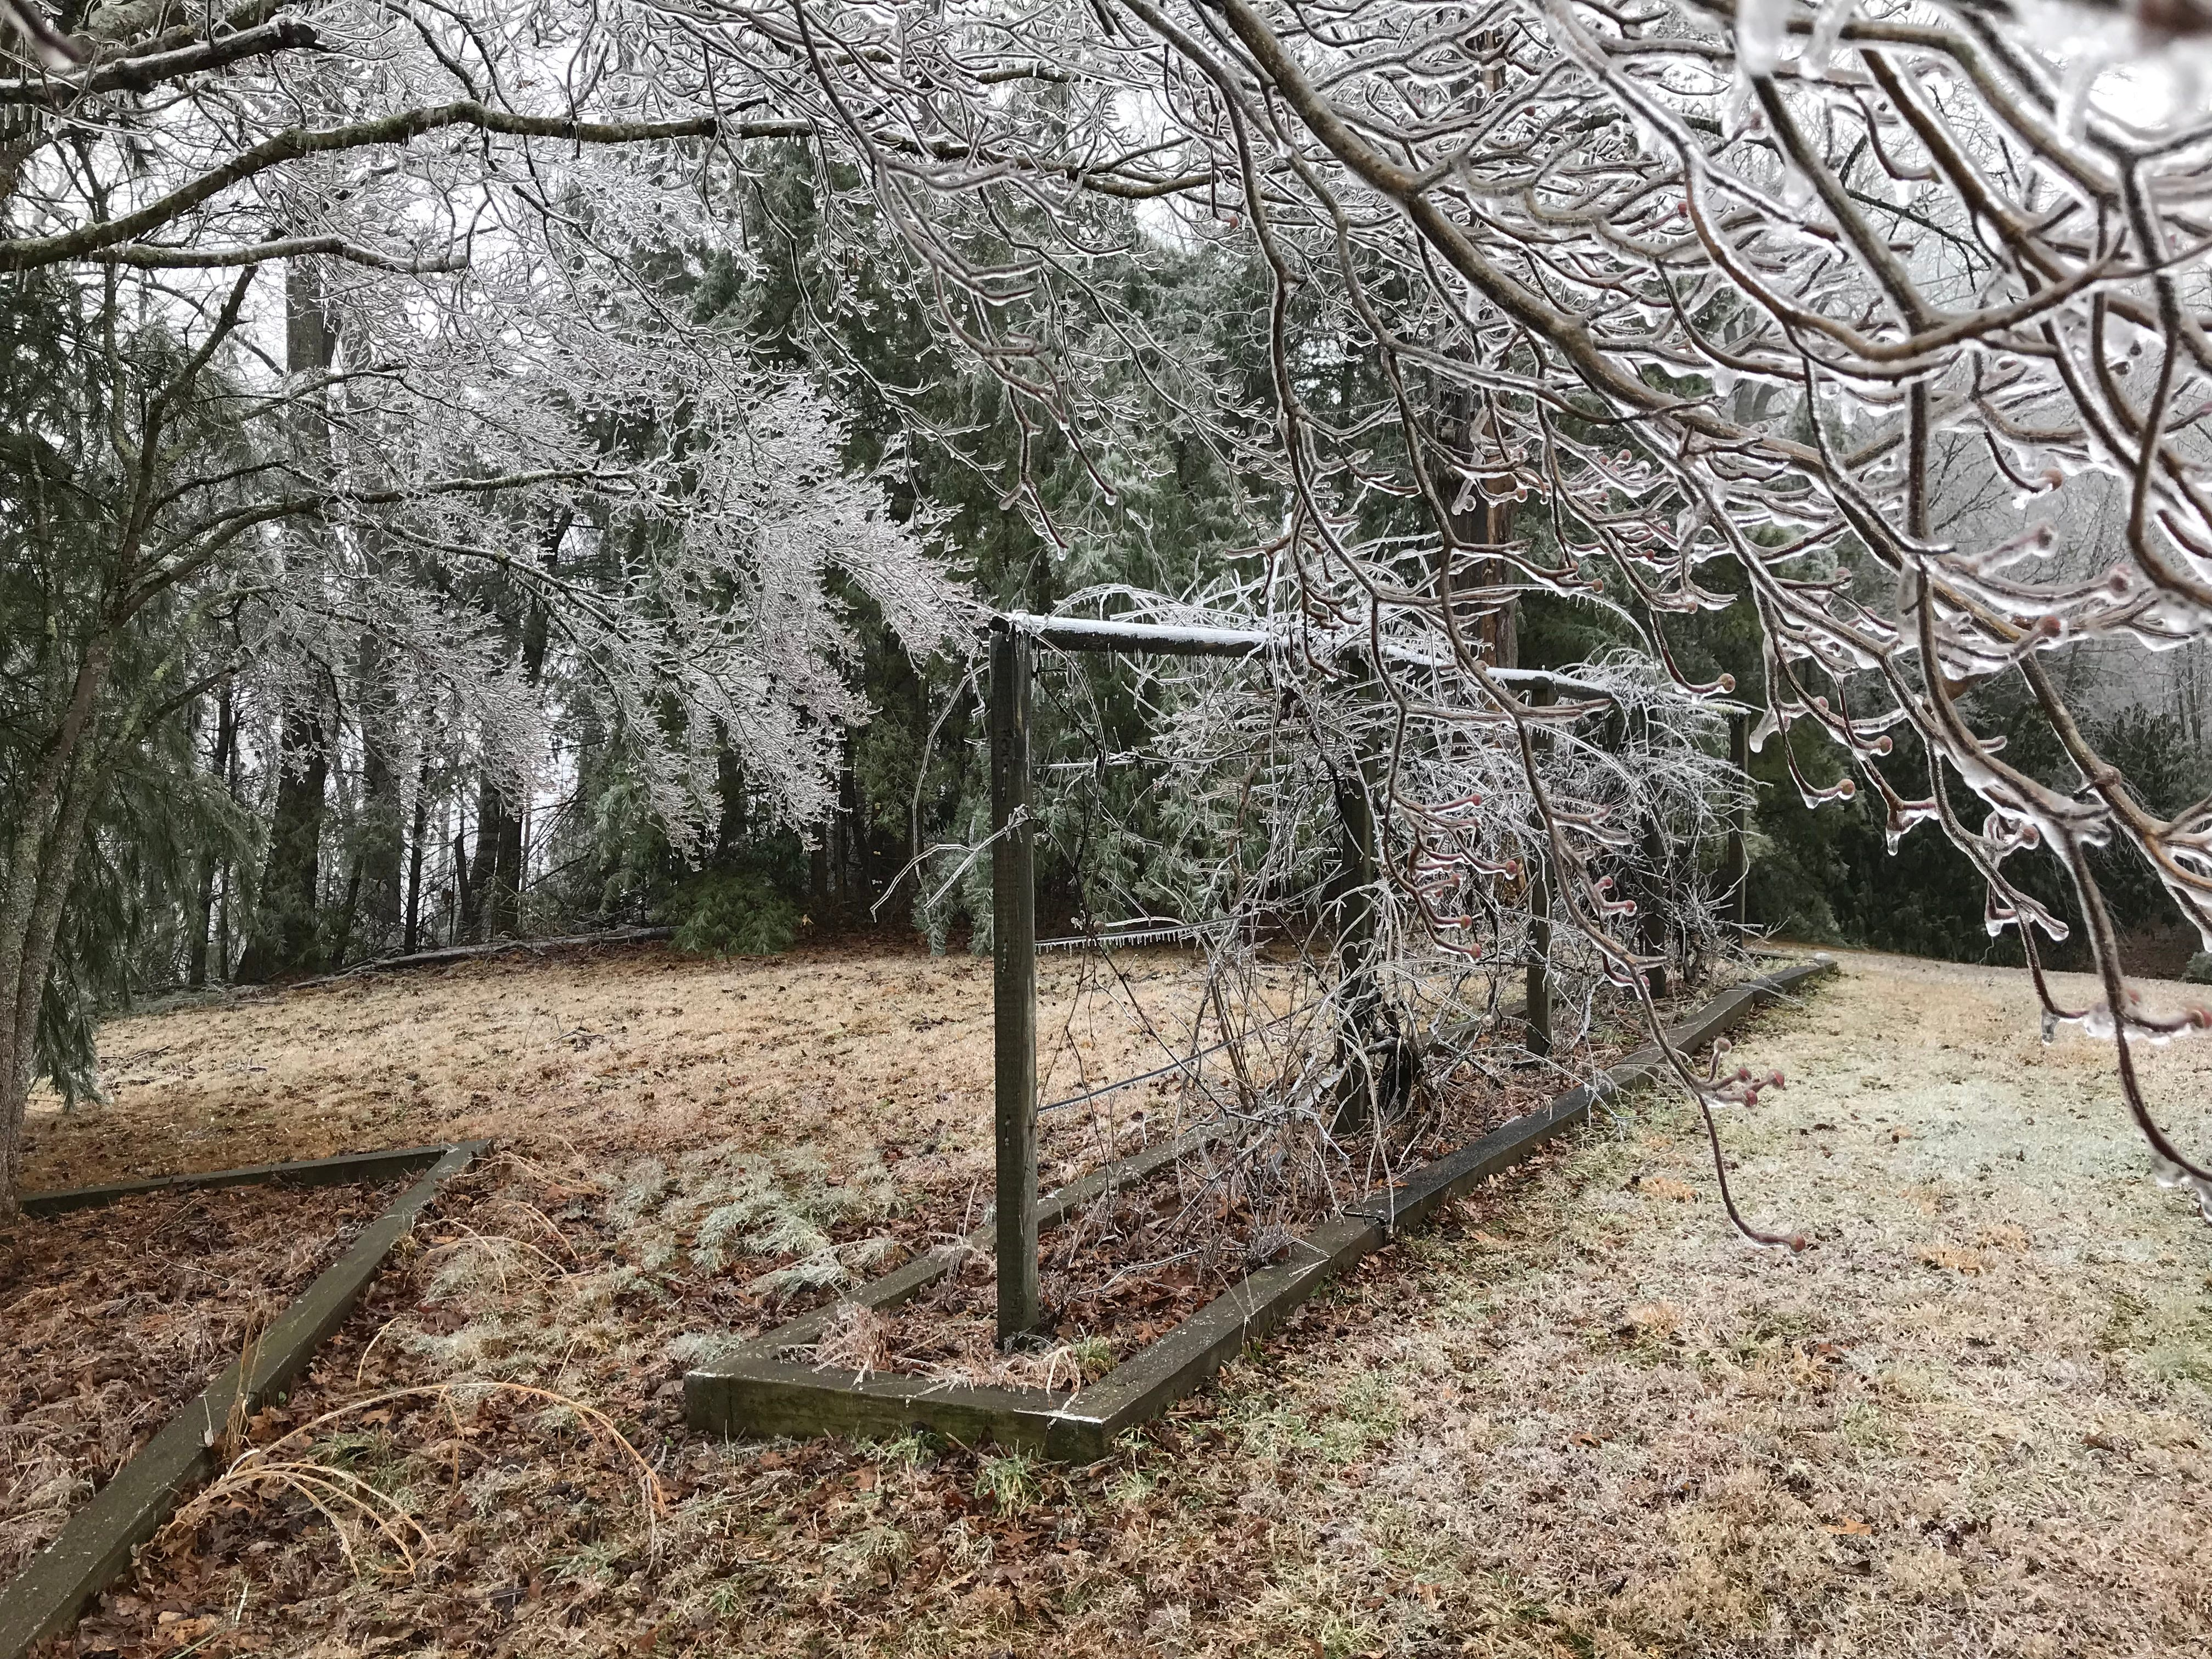 A reader in Fairview shared these photos of his property from Sunday morning, after the Saturday night ice storm in Western North Carolina.